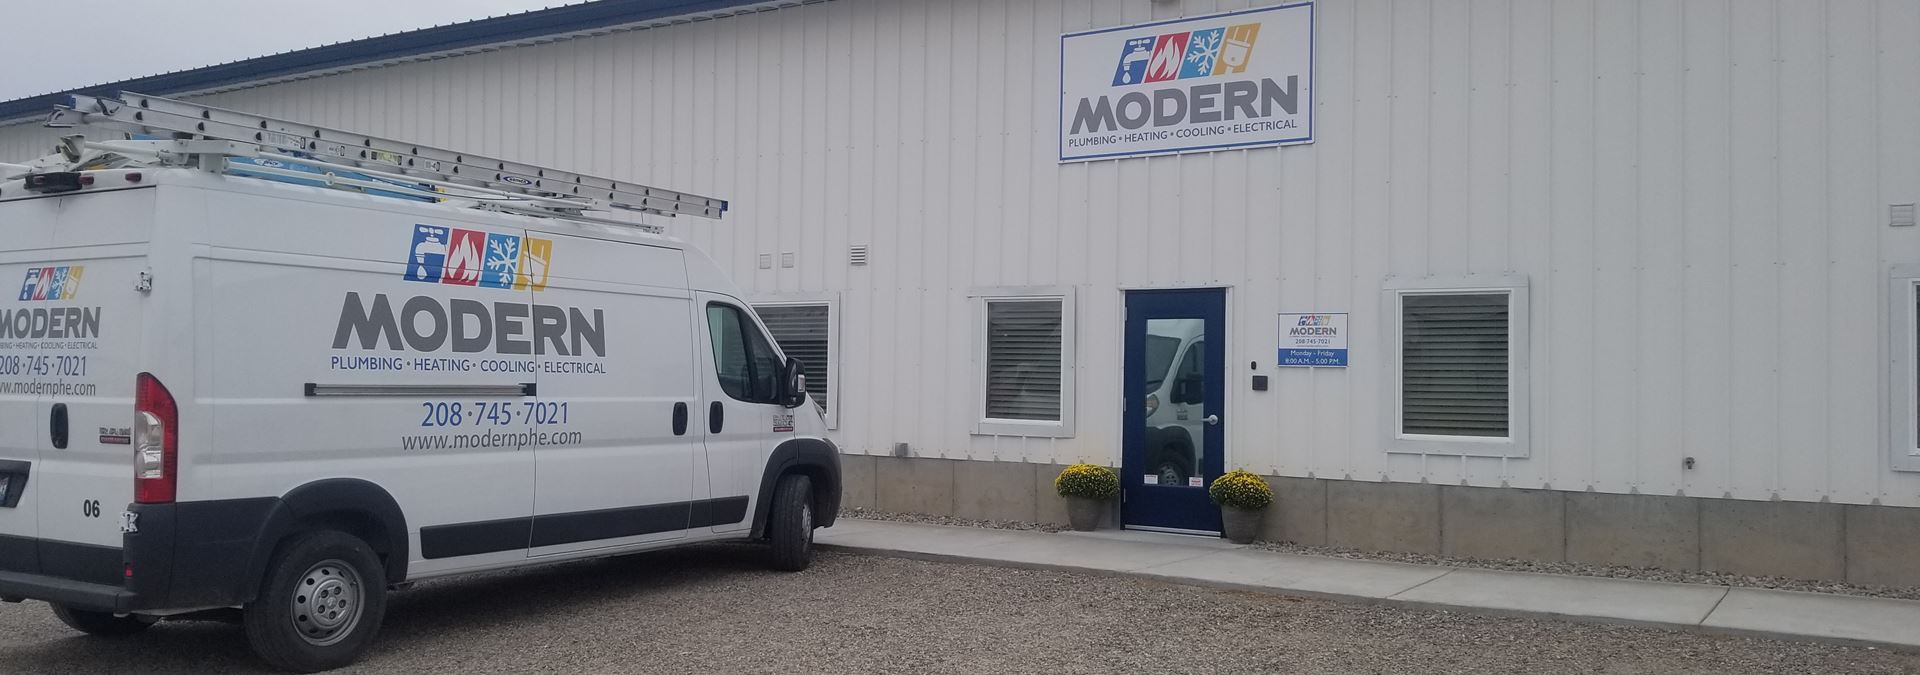 Welcome to Modern Plumbing, Heating and Electrical!